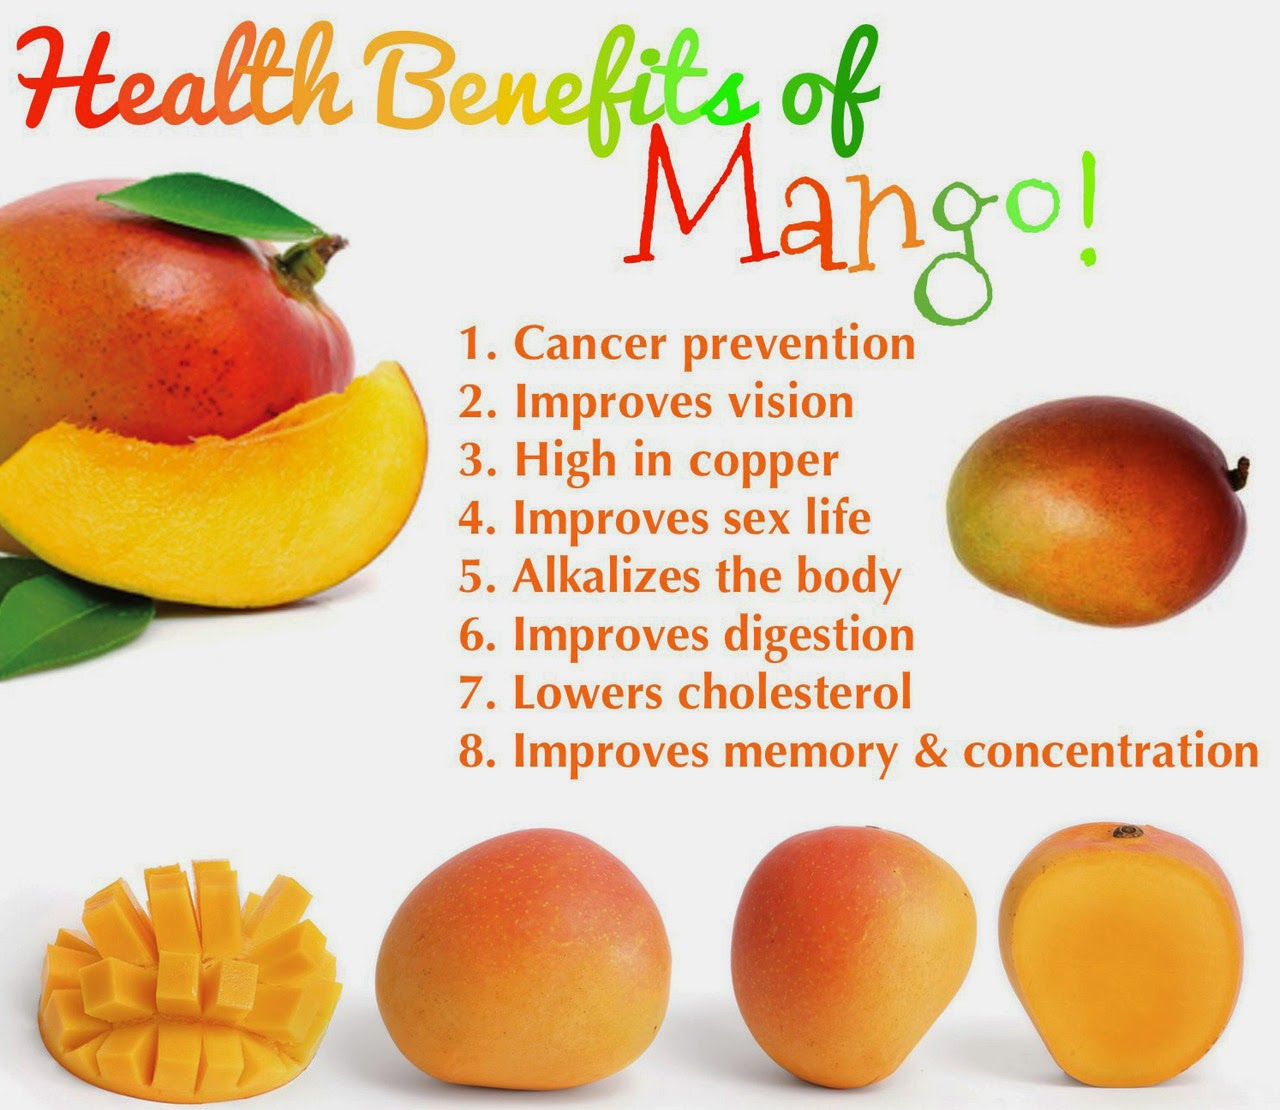 Why I Eat Mangothe Health Benefits Of Mango